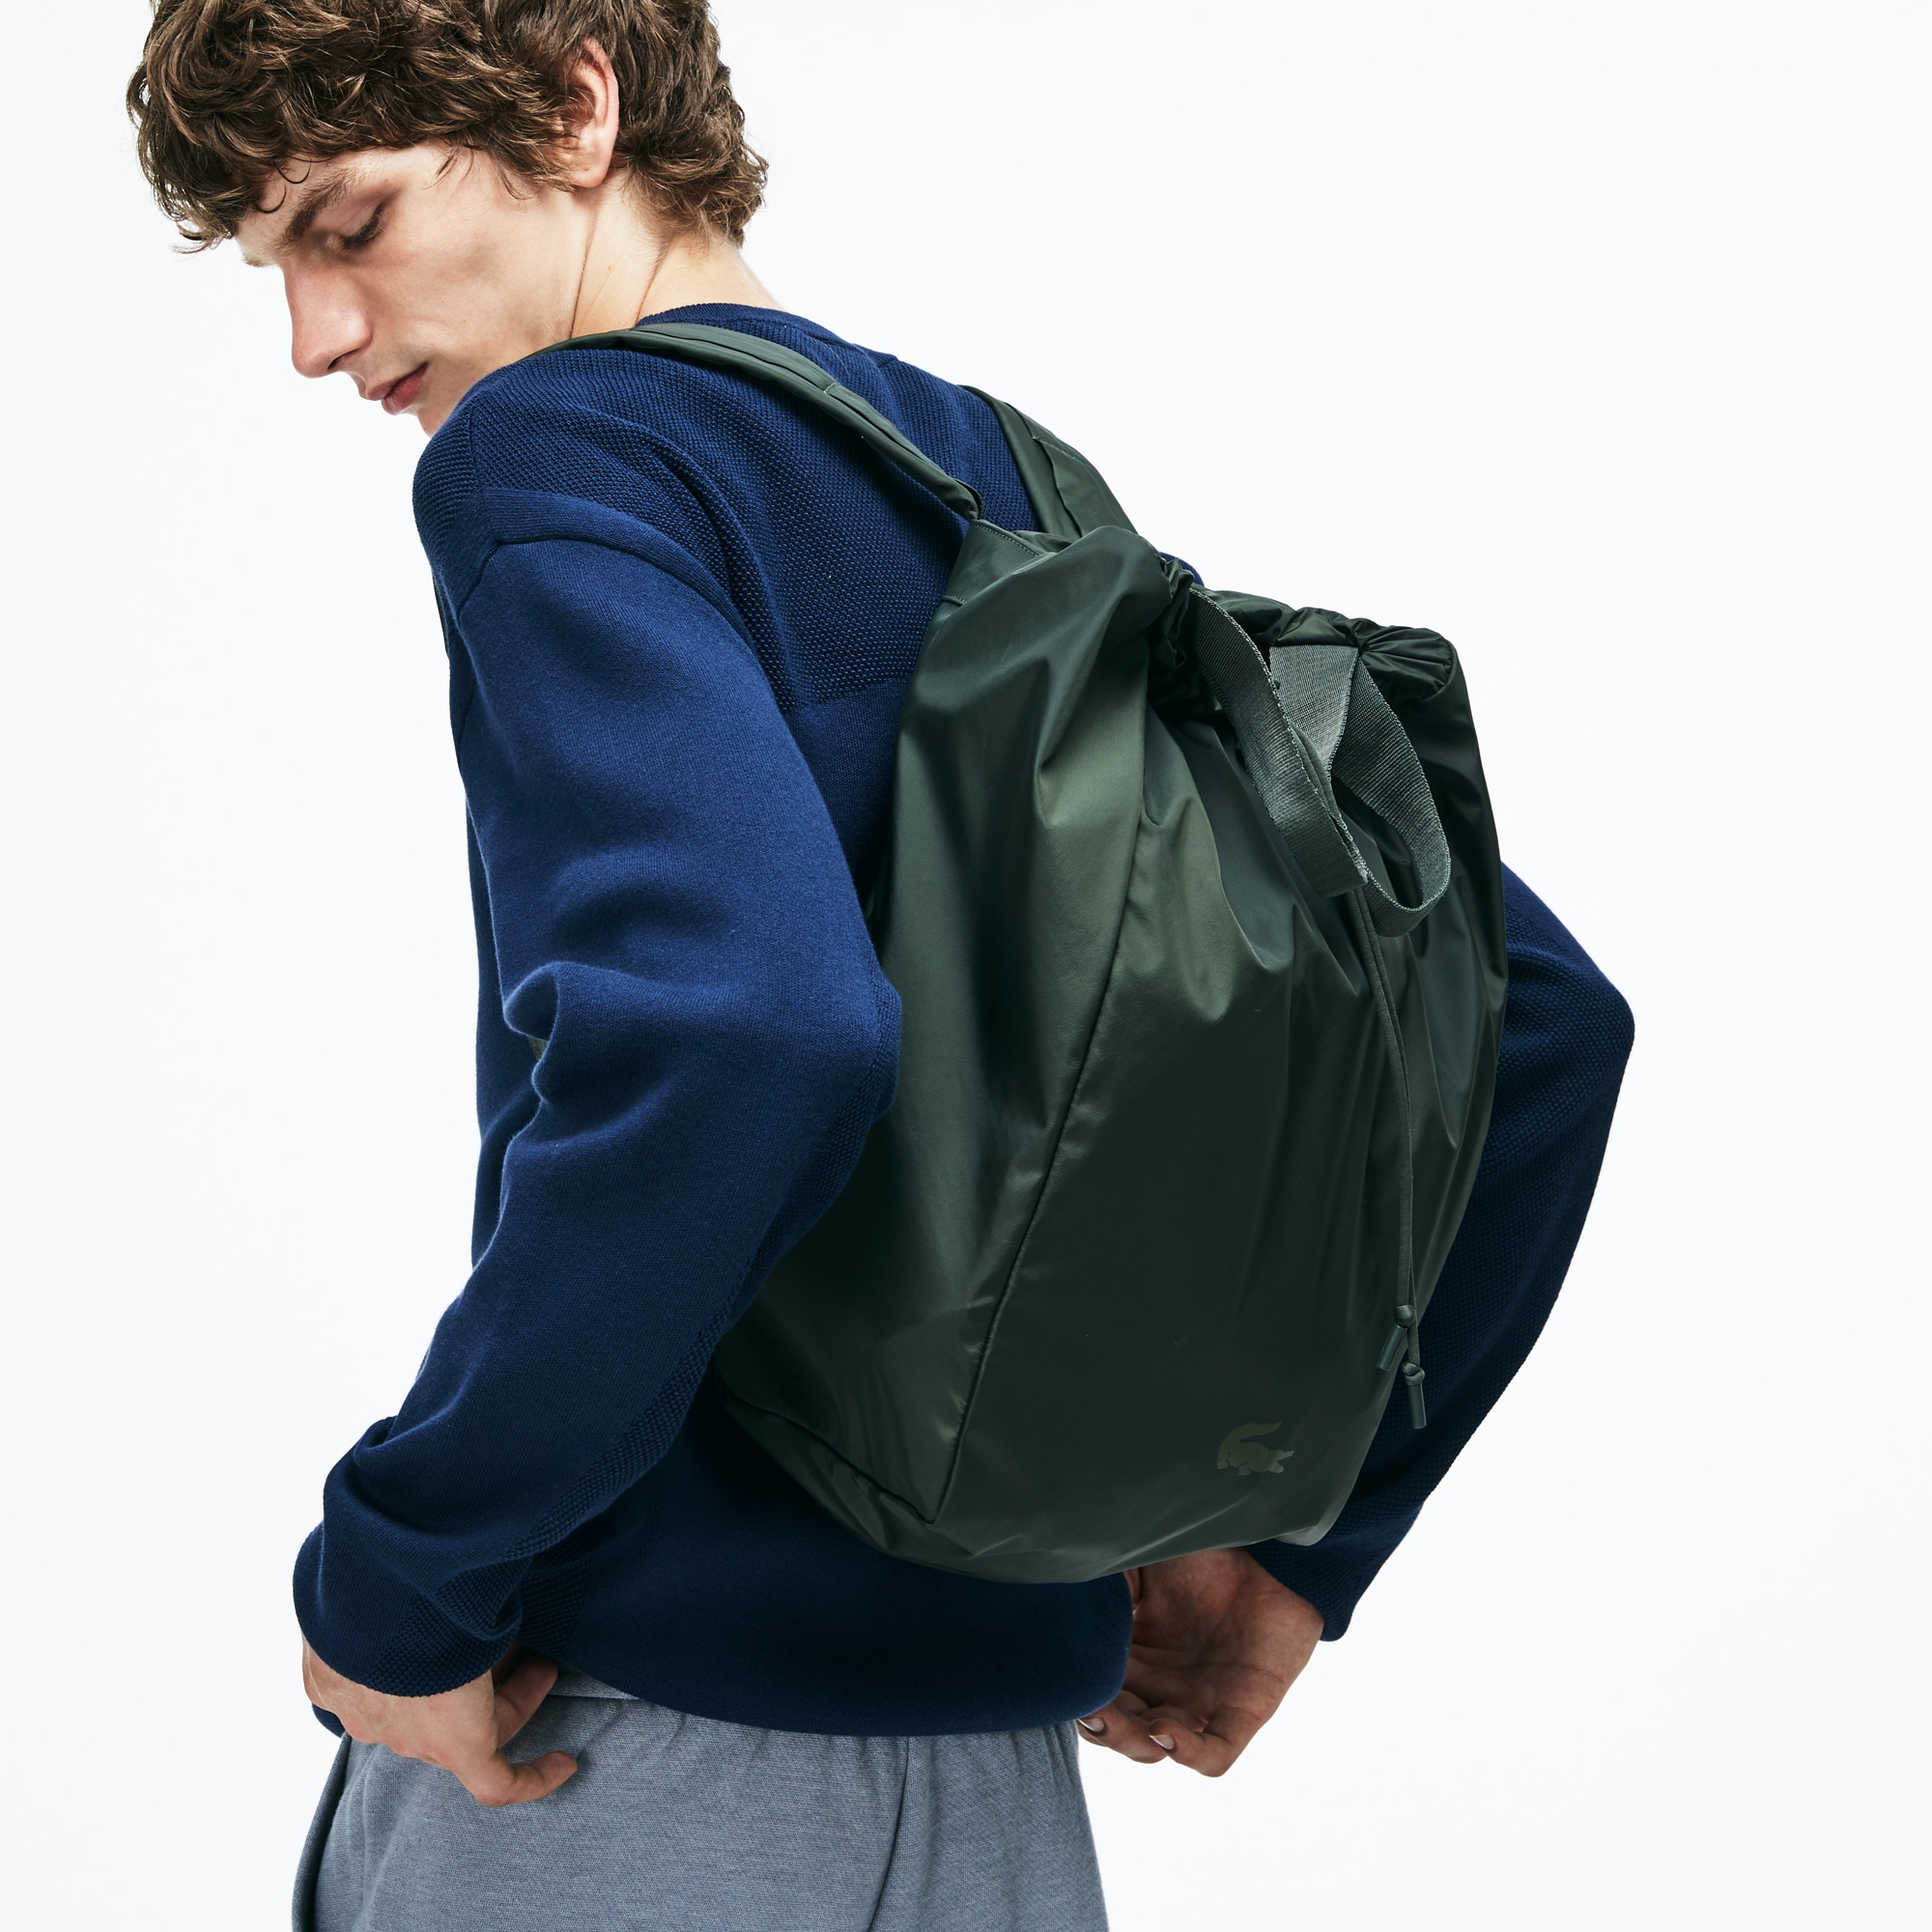 757d6827caccc Mochila Plegable De Hombre Lacoste Motion En Nylon Técnico. Color   FOREST  NIGHT